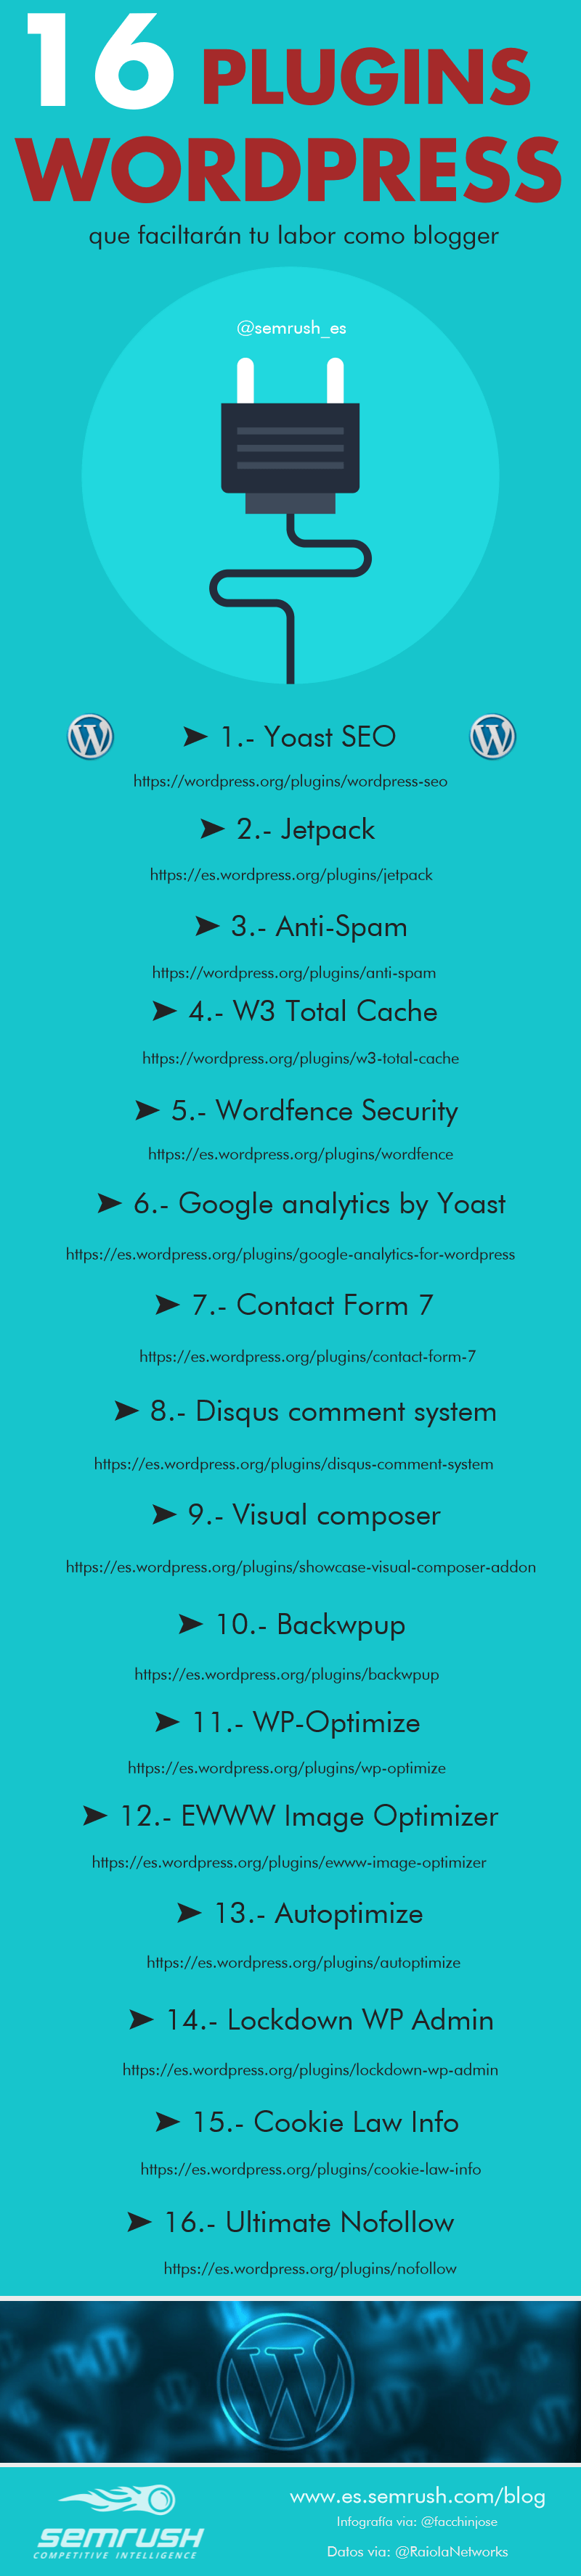 16 Plugins Wordpress Infografía